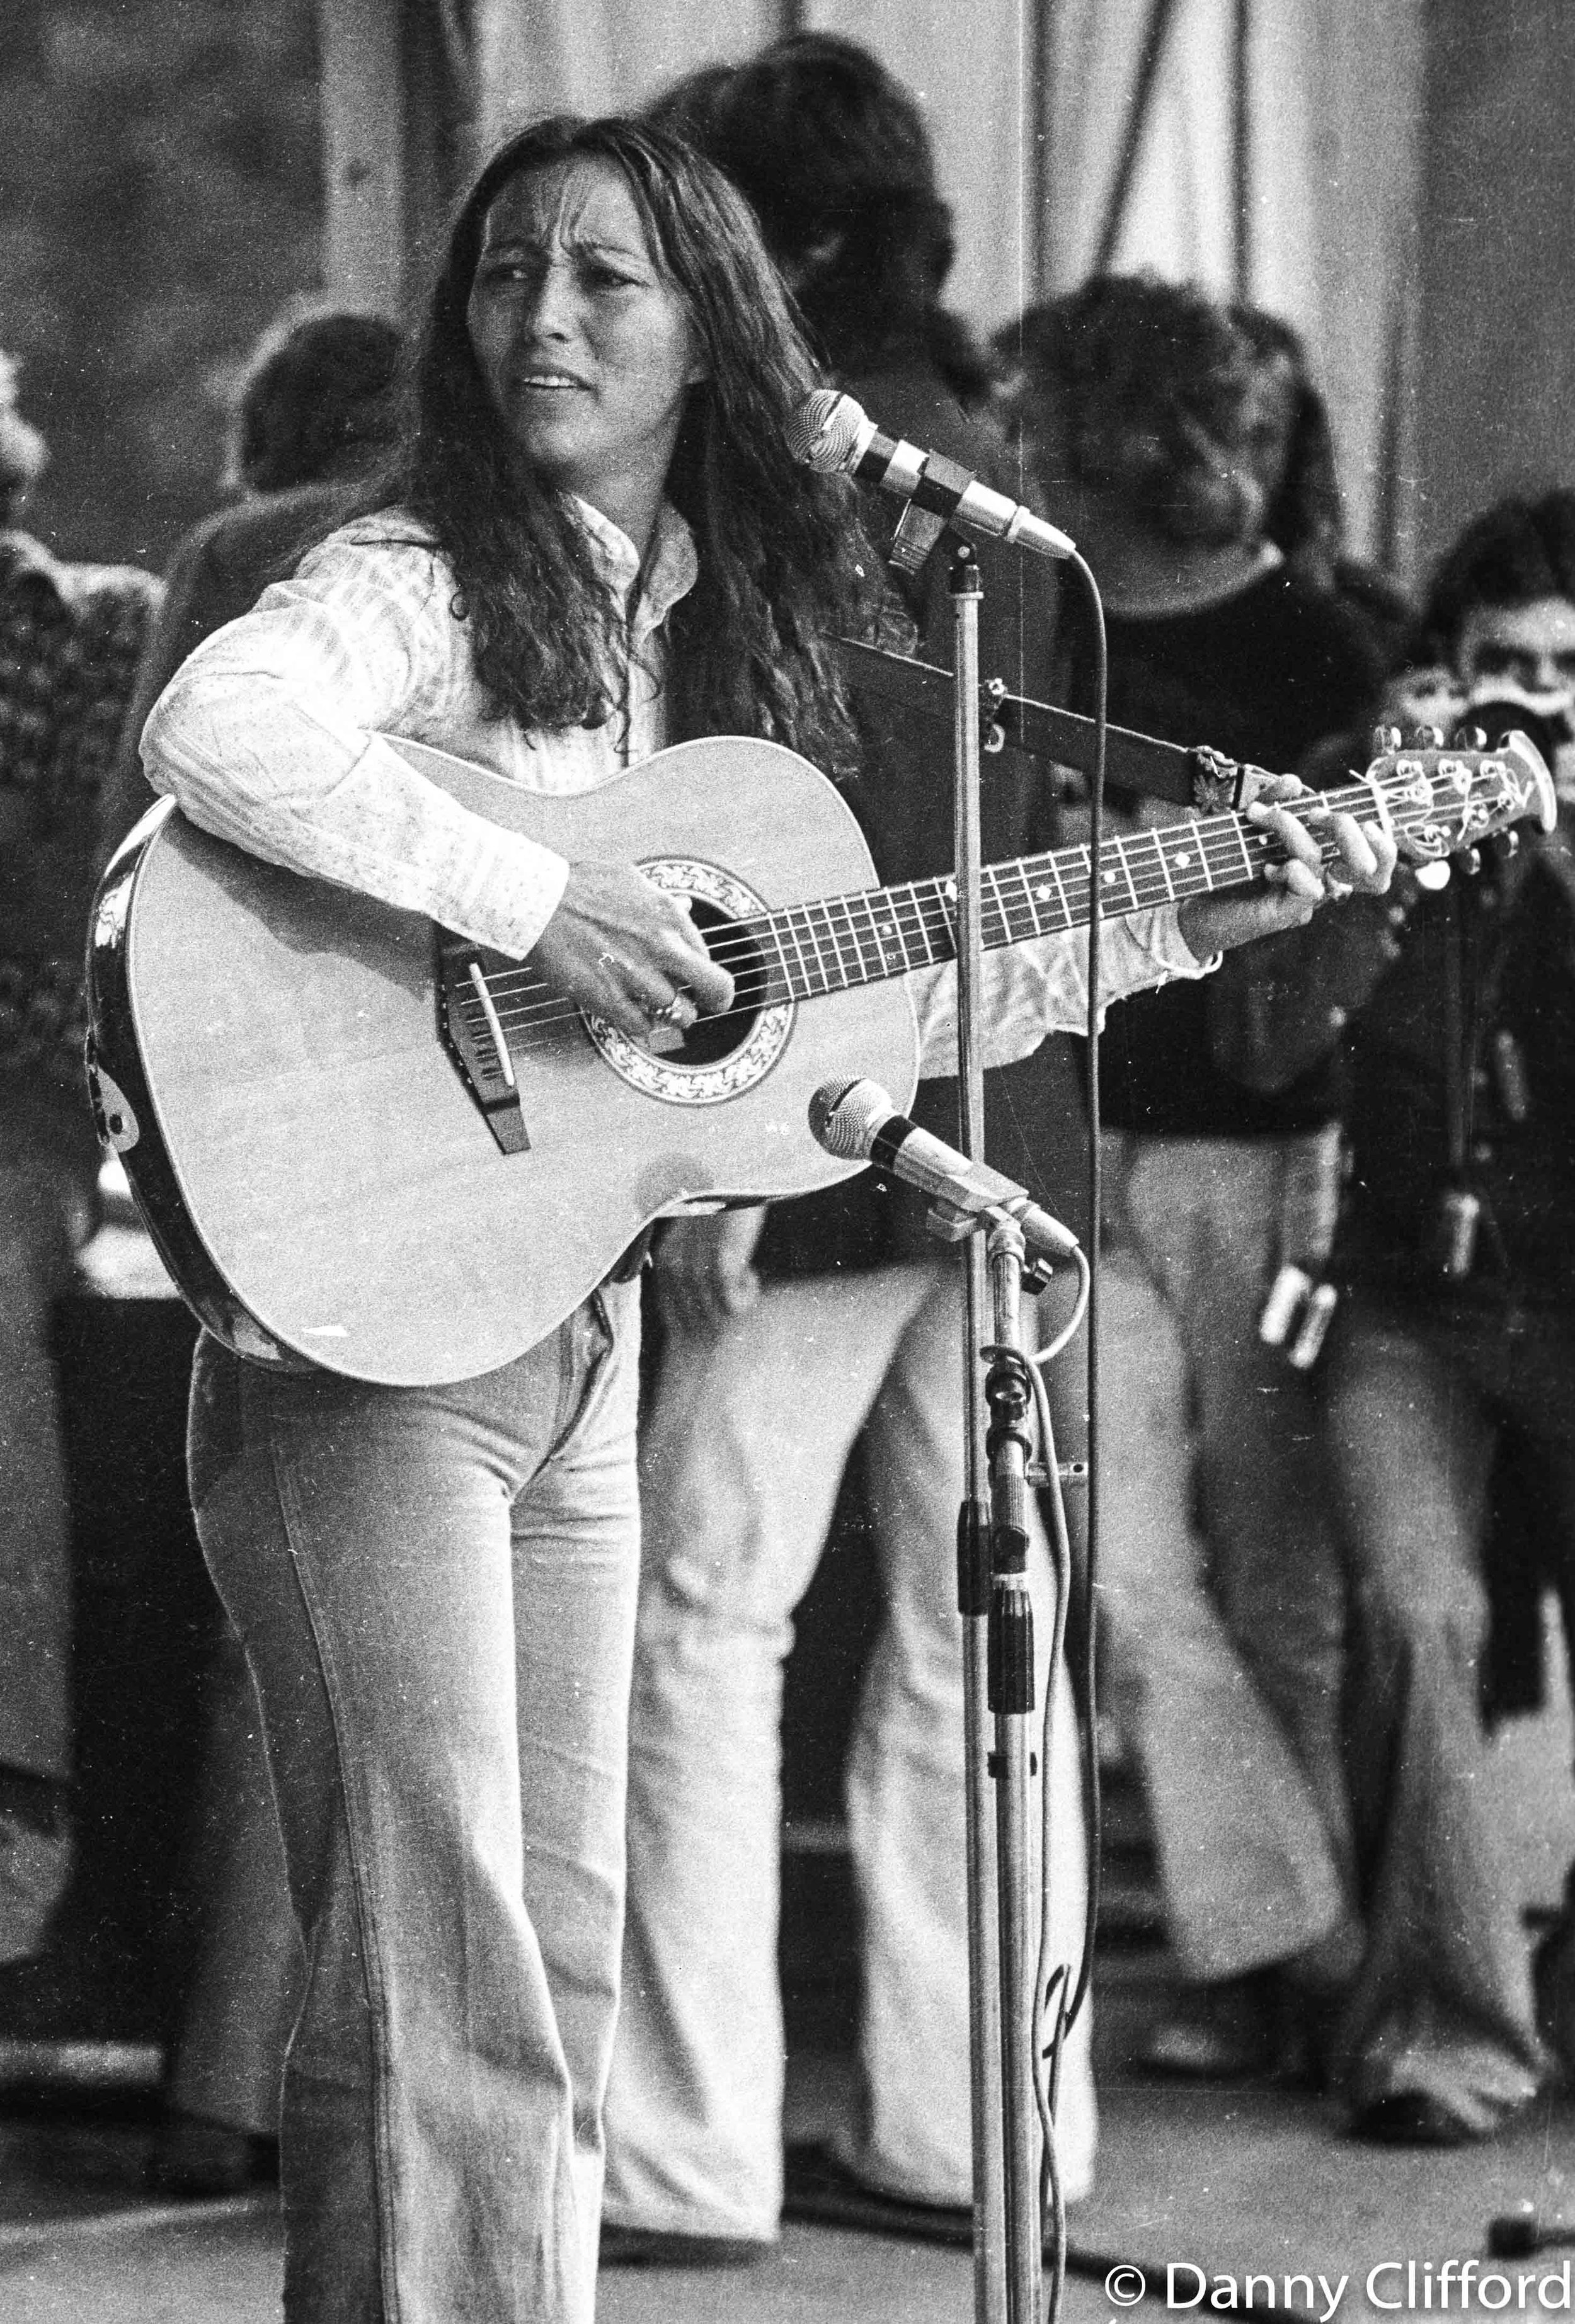 Julie performing on stage at Hyde Park, London in the mid 1970's.. I clearly remember taking this photo..